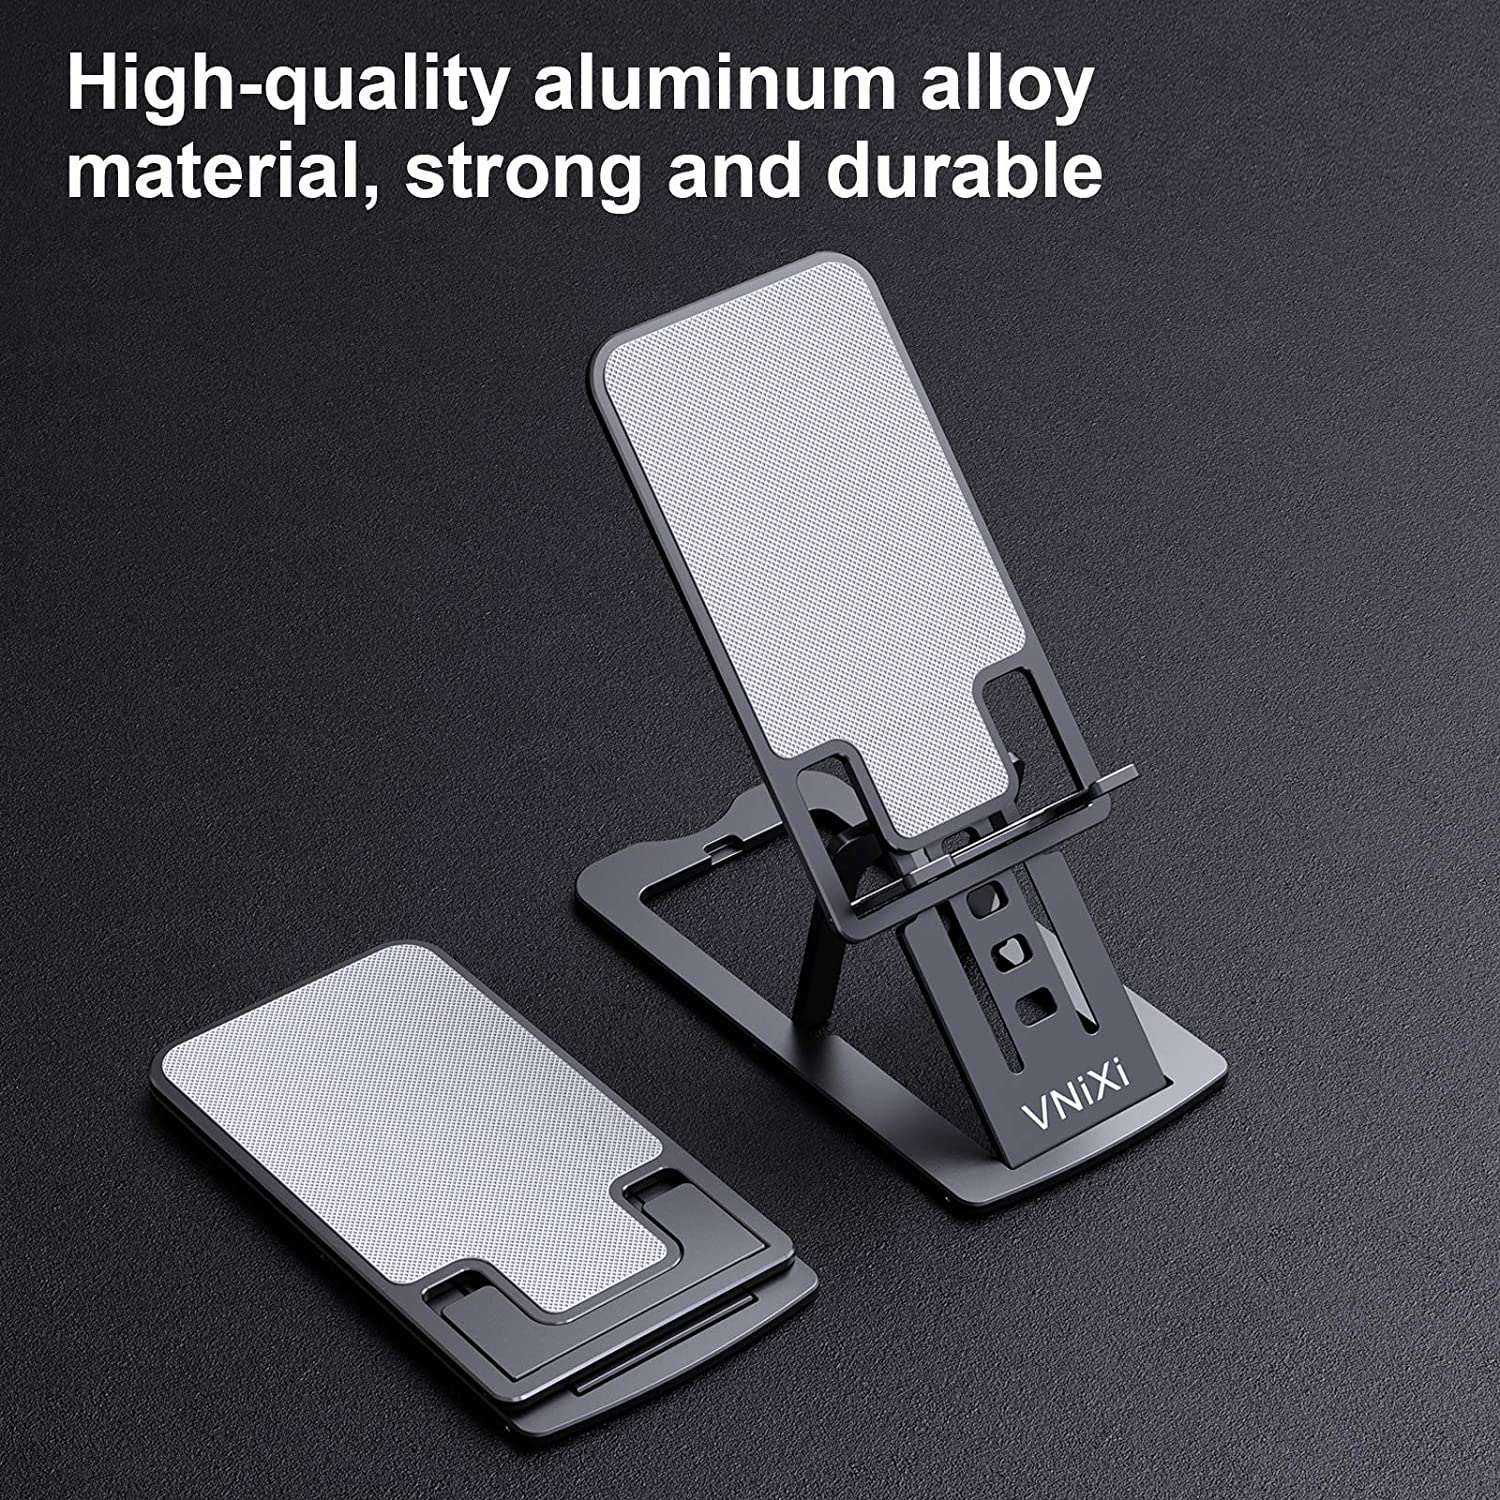 Solid Aluminum Alloy Deep Gray VNiXi Cell Phone Stand,Portable Ultra thin Adjustable 7-Level Folding Mobile Phone Holder Compatible with Phone 11 12 Pro Xs Xs Max Xr X 8 7 6 6s Plus// iPad // Kindle